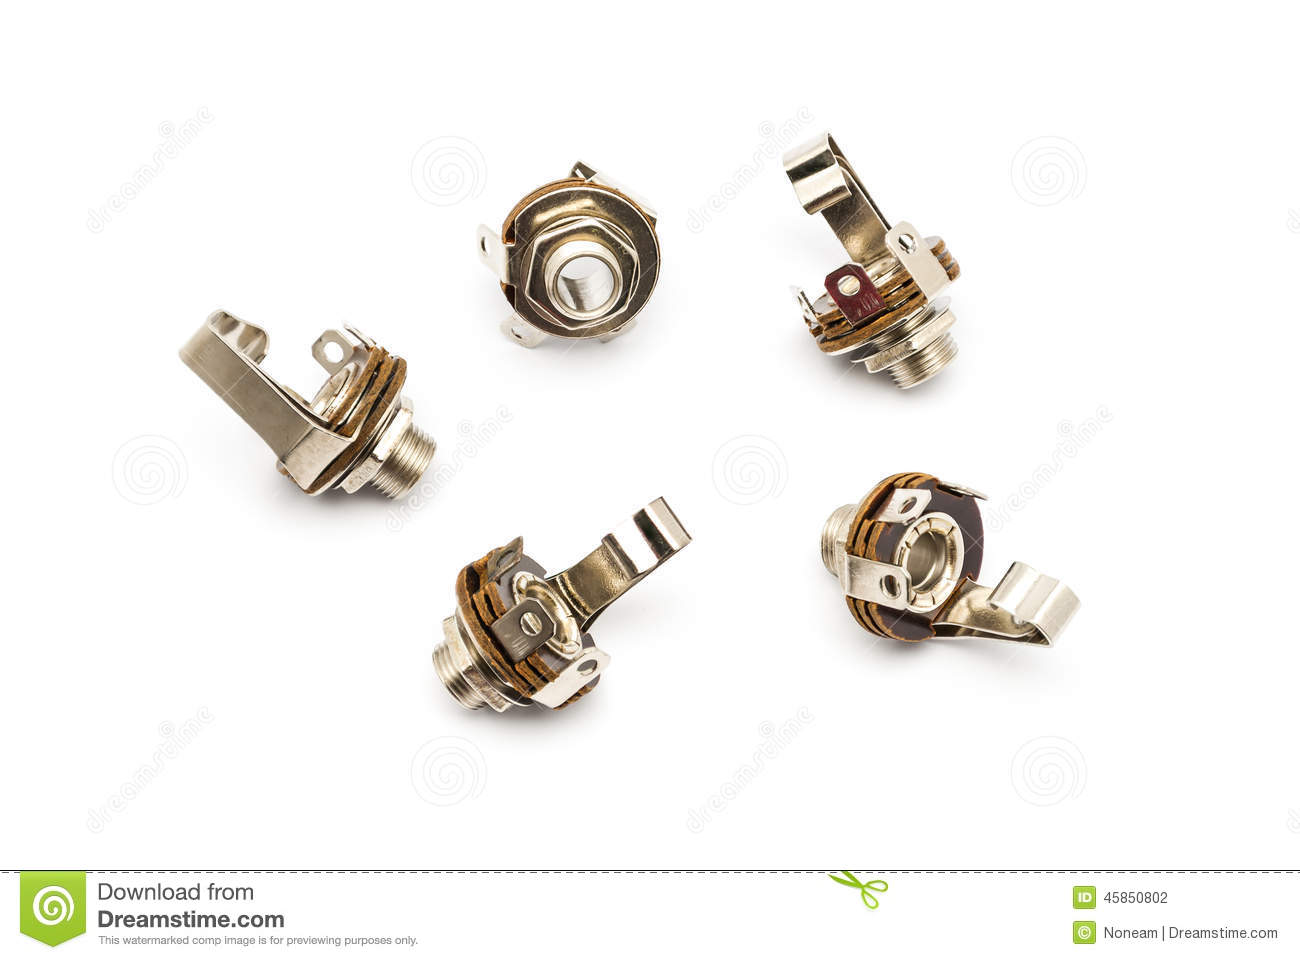 RCA Plug to mm Jack Adapter - m